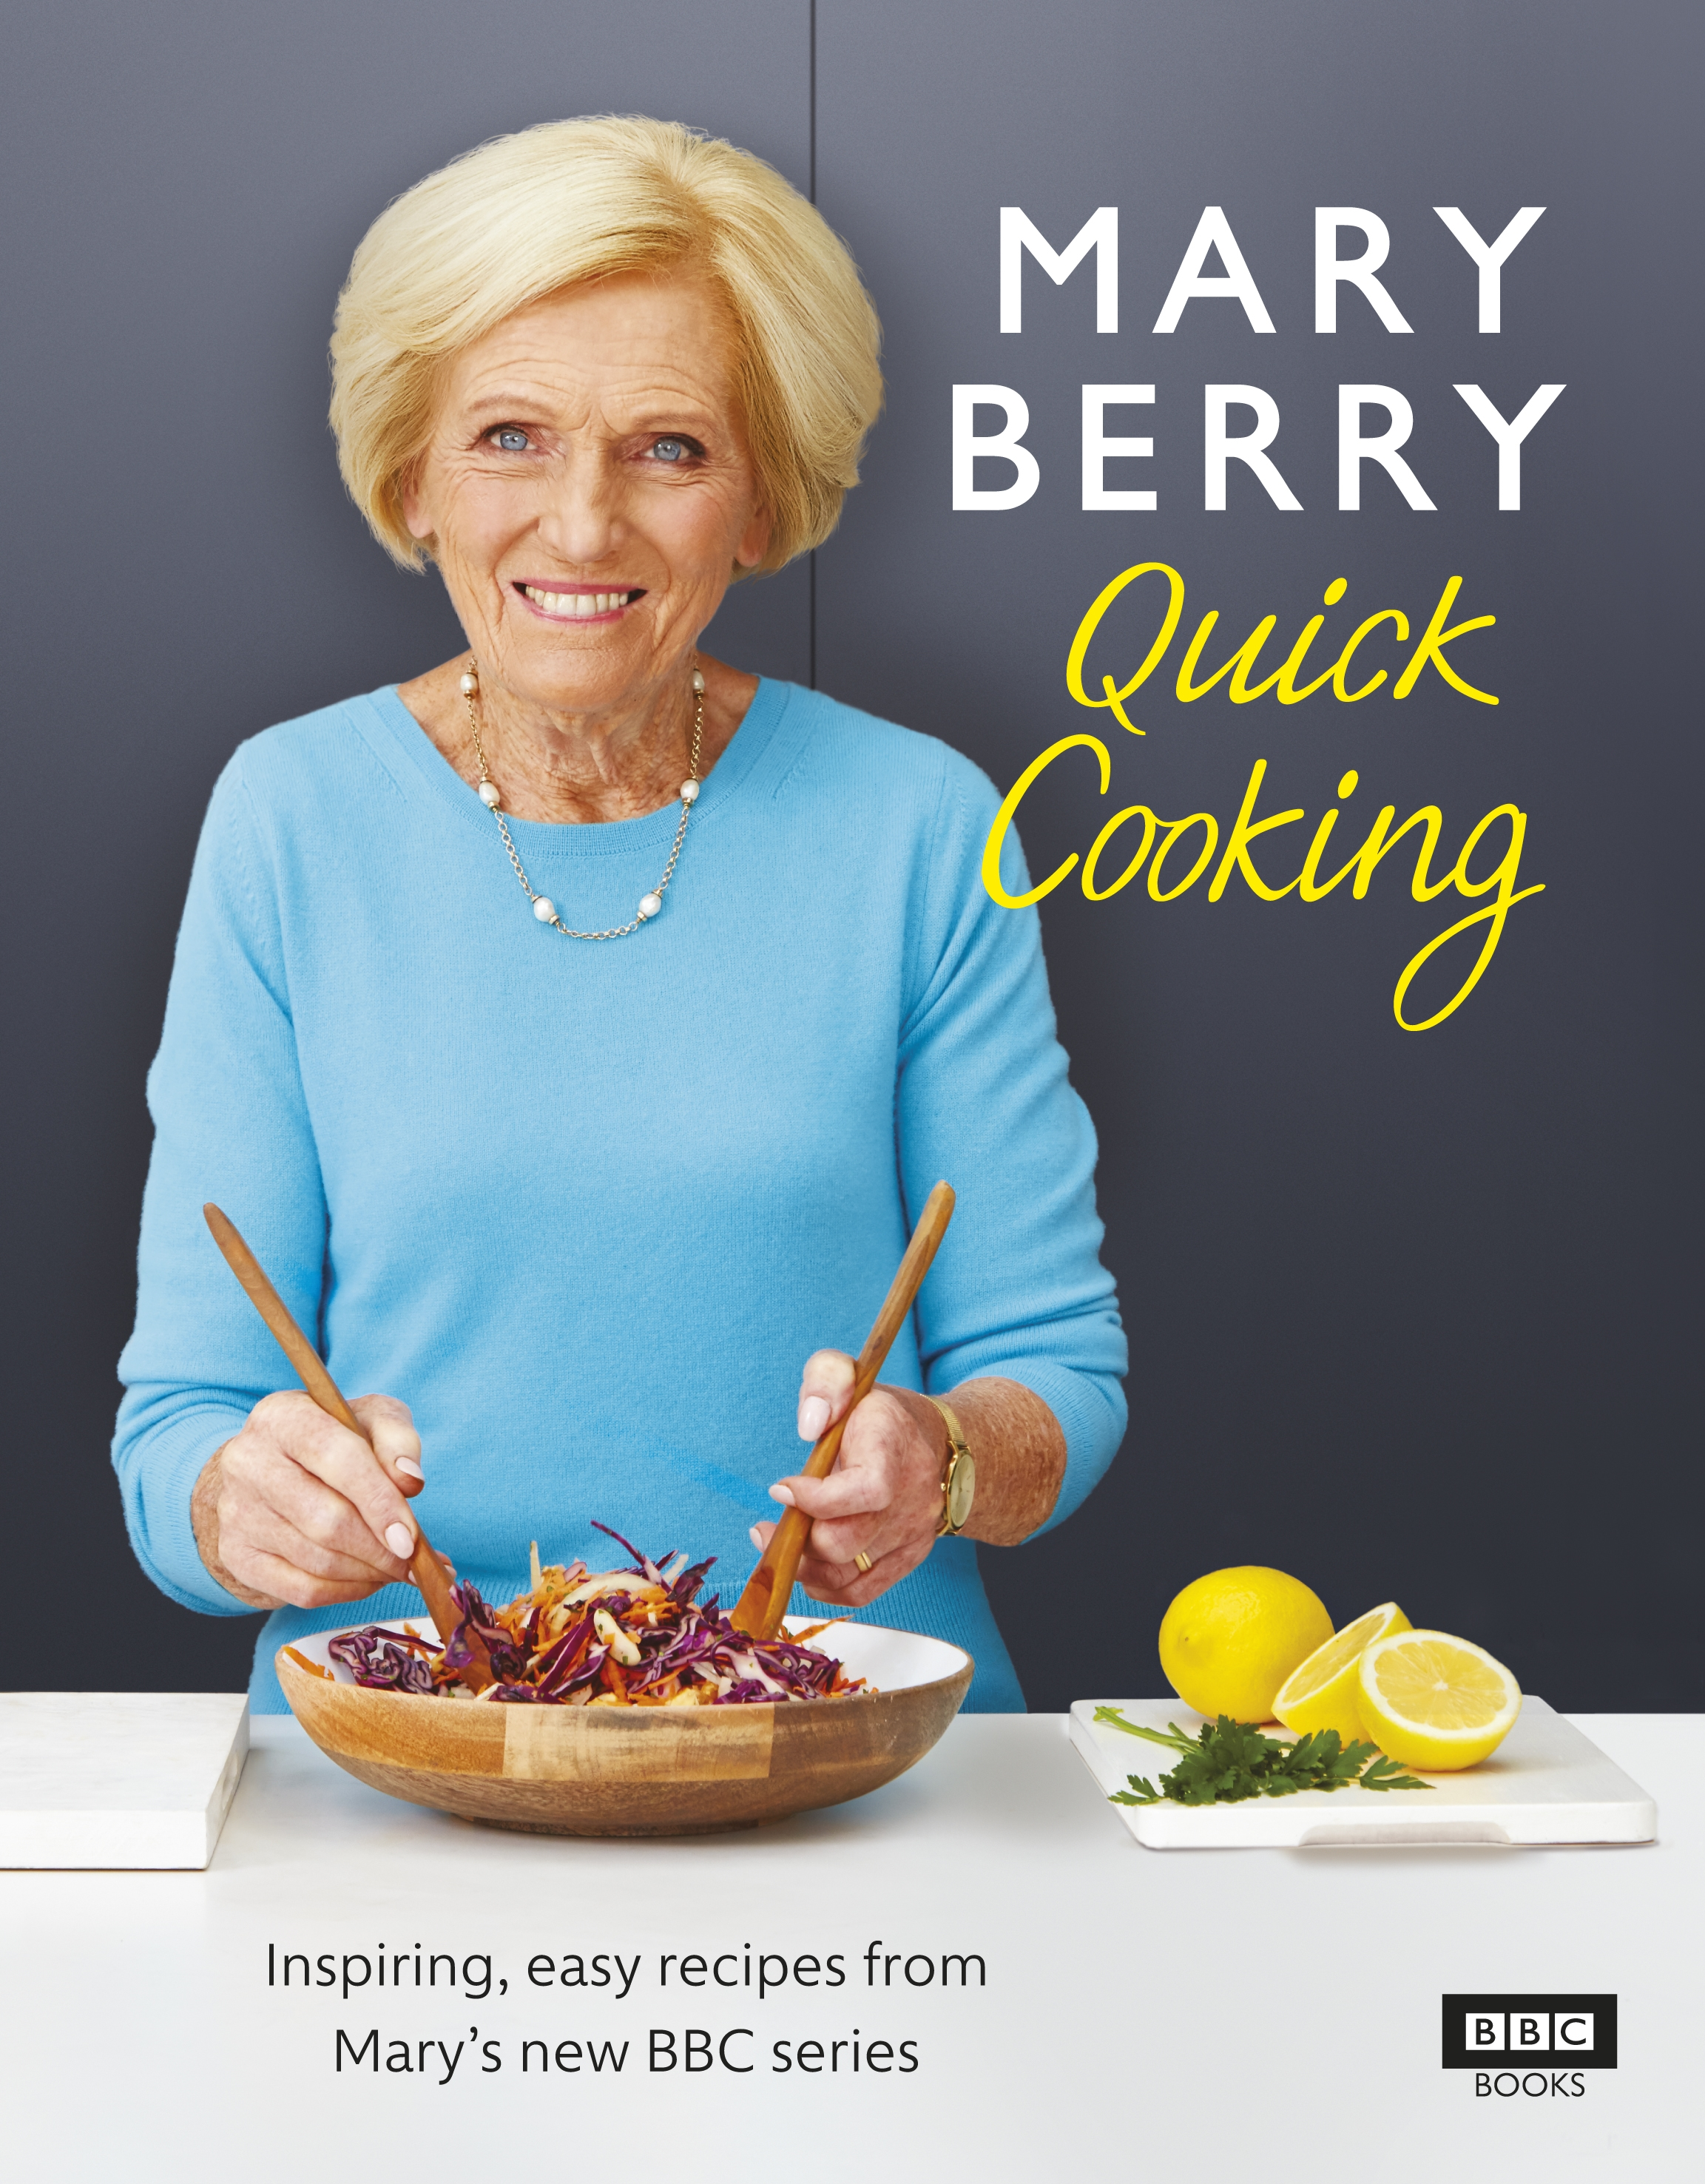 Mary Berry's TV Tie-in 2019